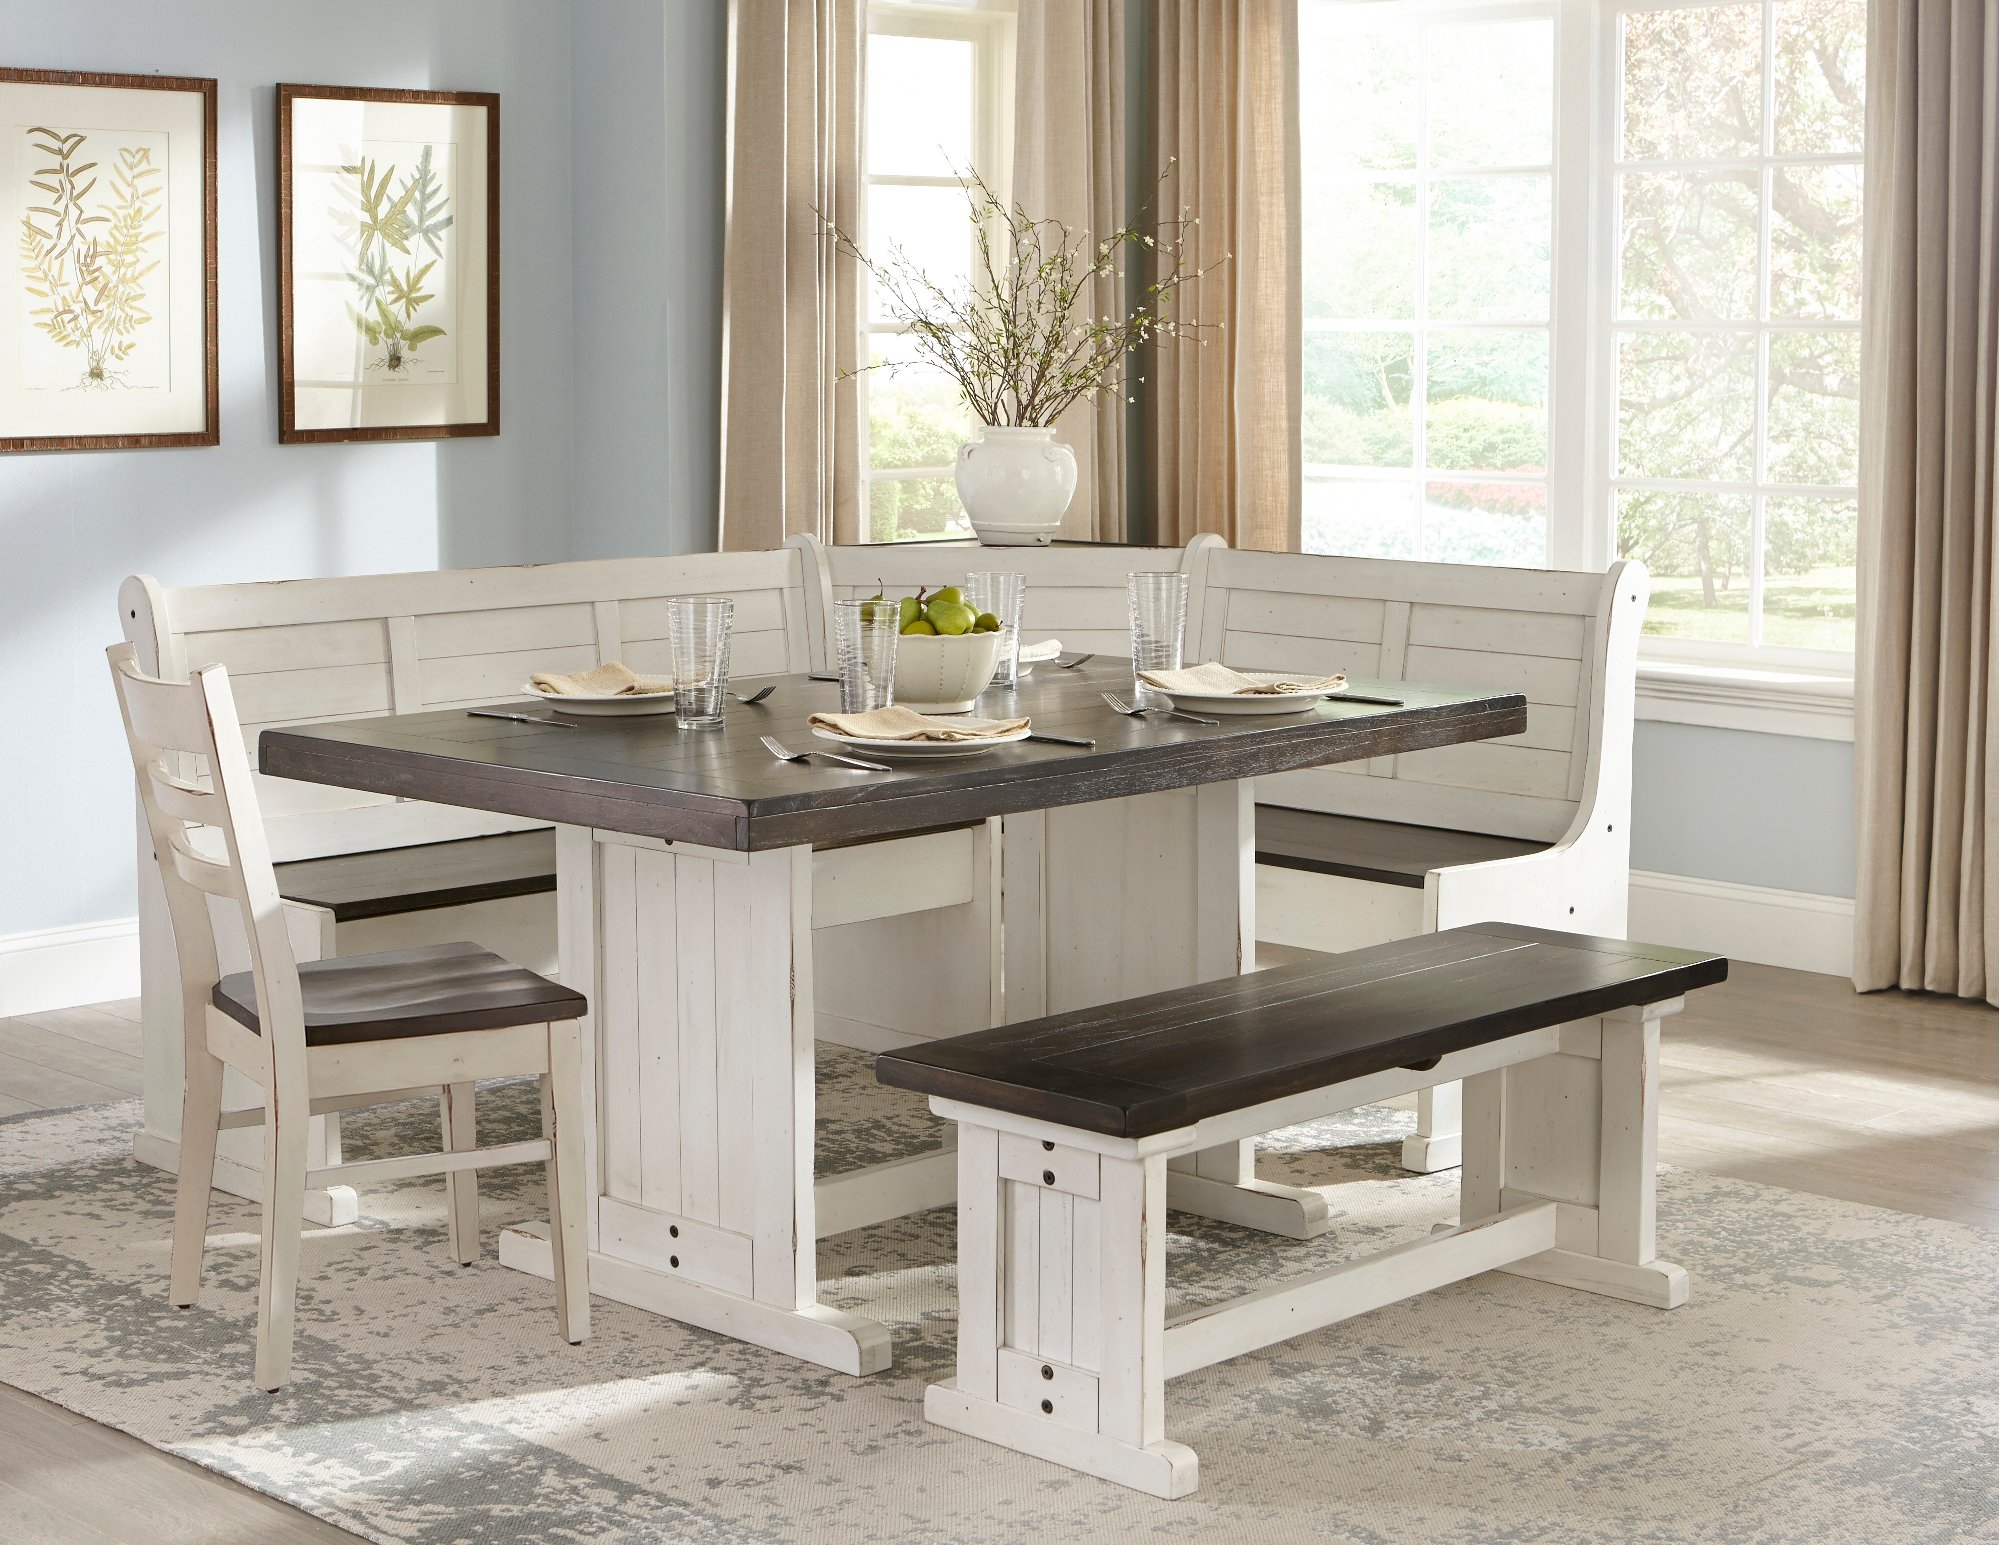 Corner Booth Dining Sets You Ll Love In 2021 Visualhunt